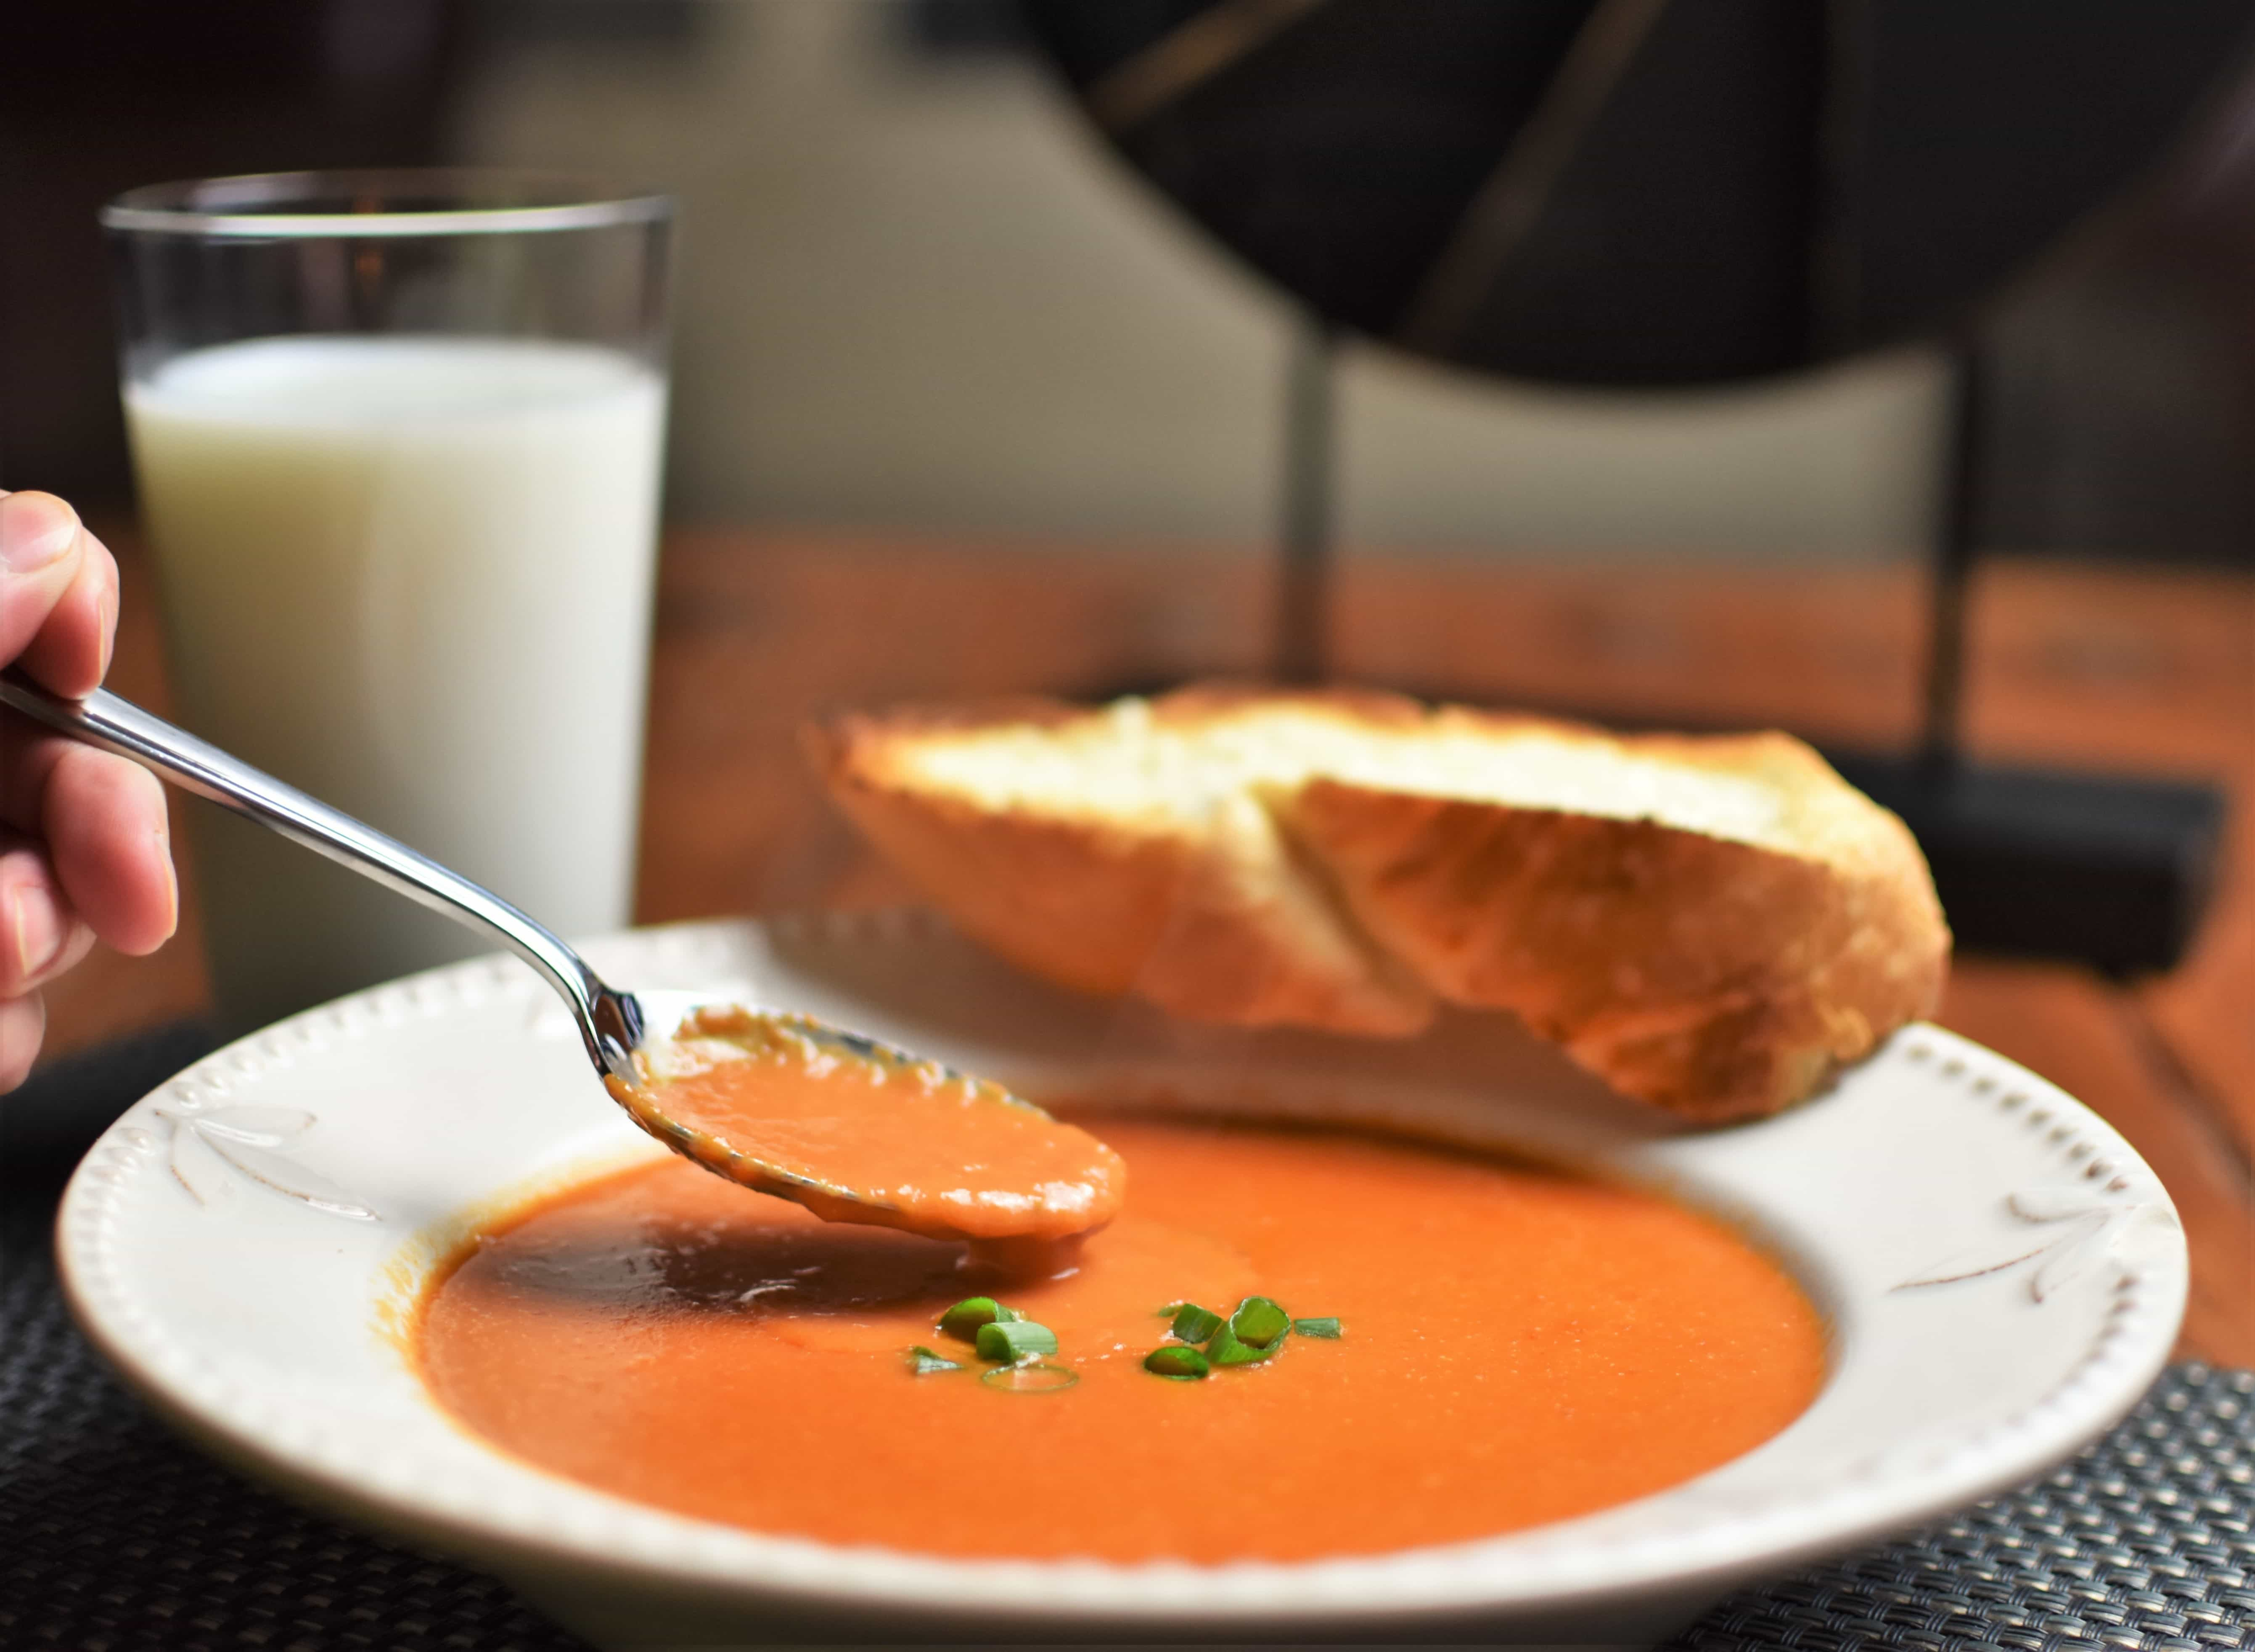 Creamy Tomato Soup with Spoon